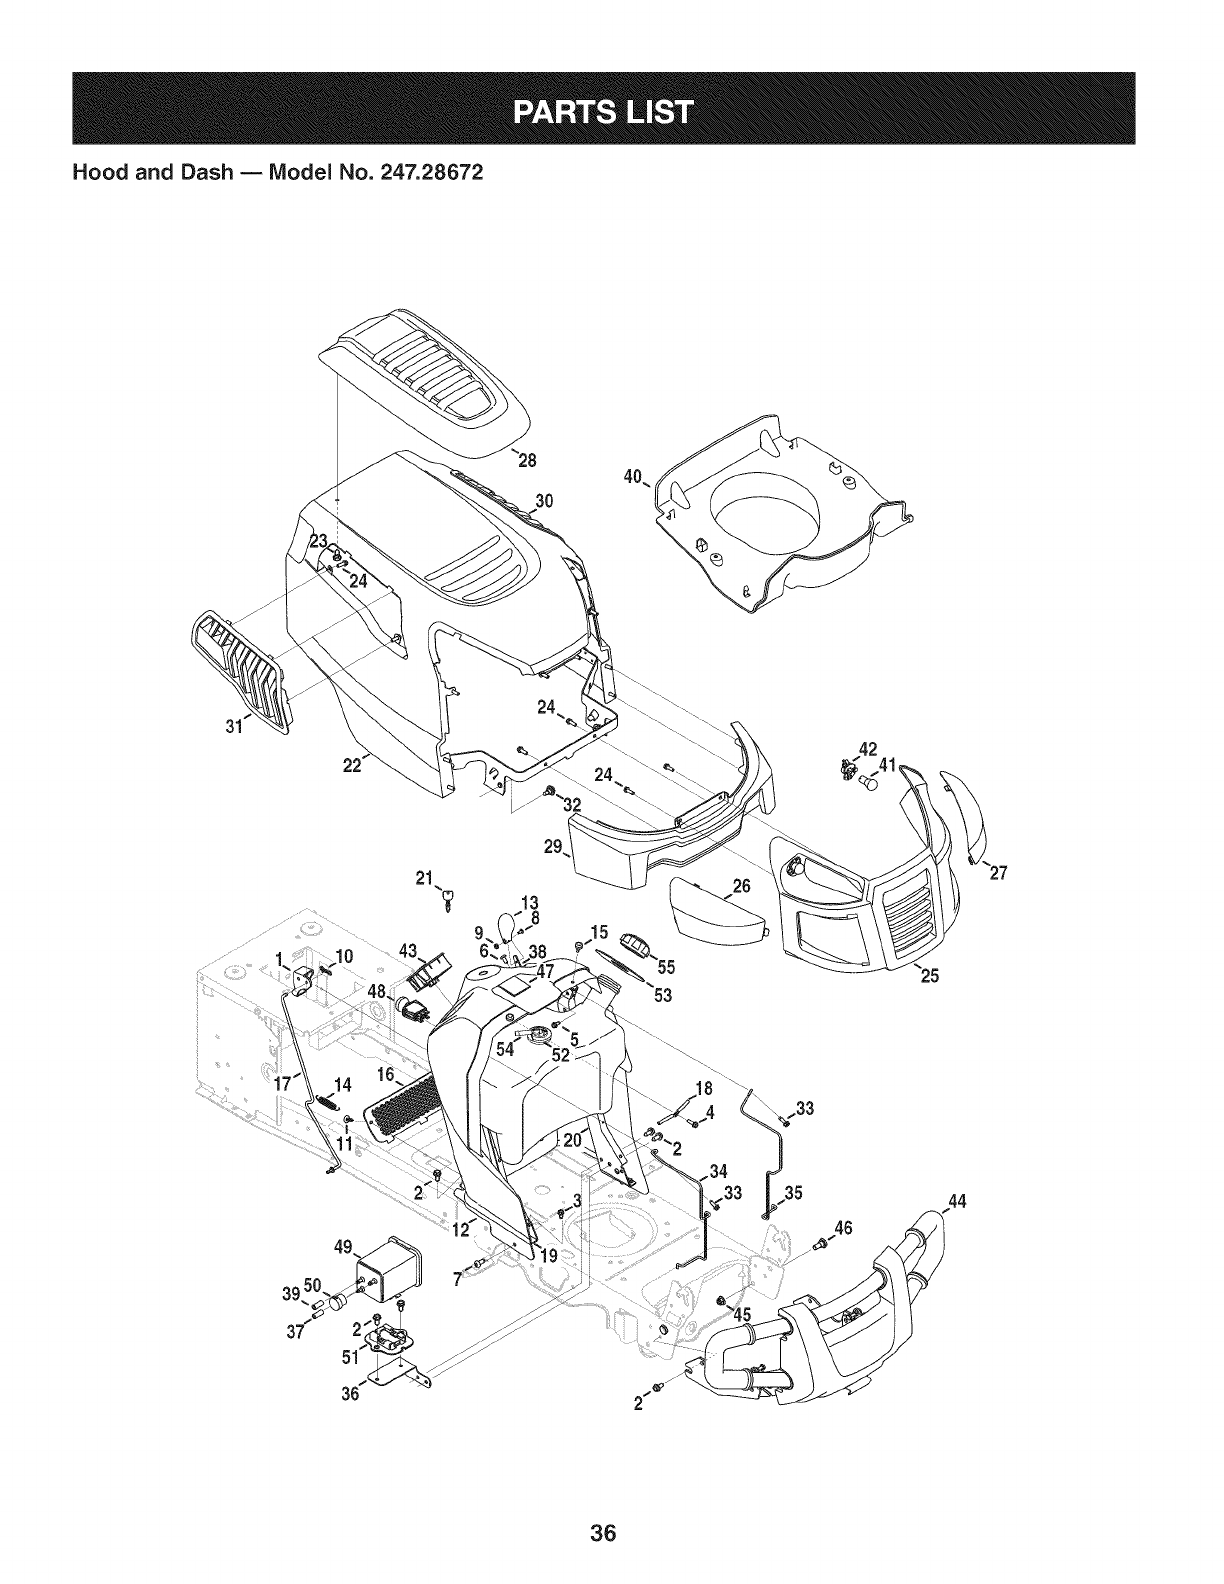 Page 36 of Craftsman Lawn Mower PYT 9000 User Guide